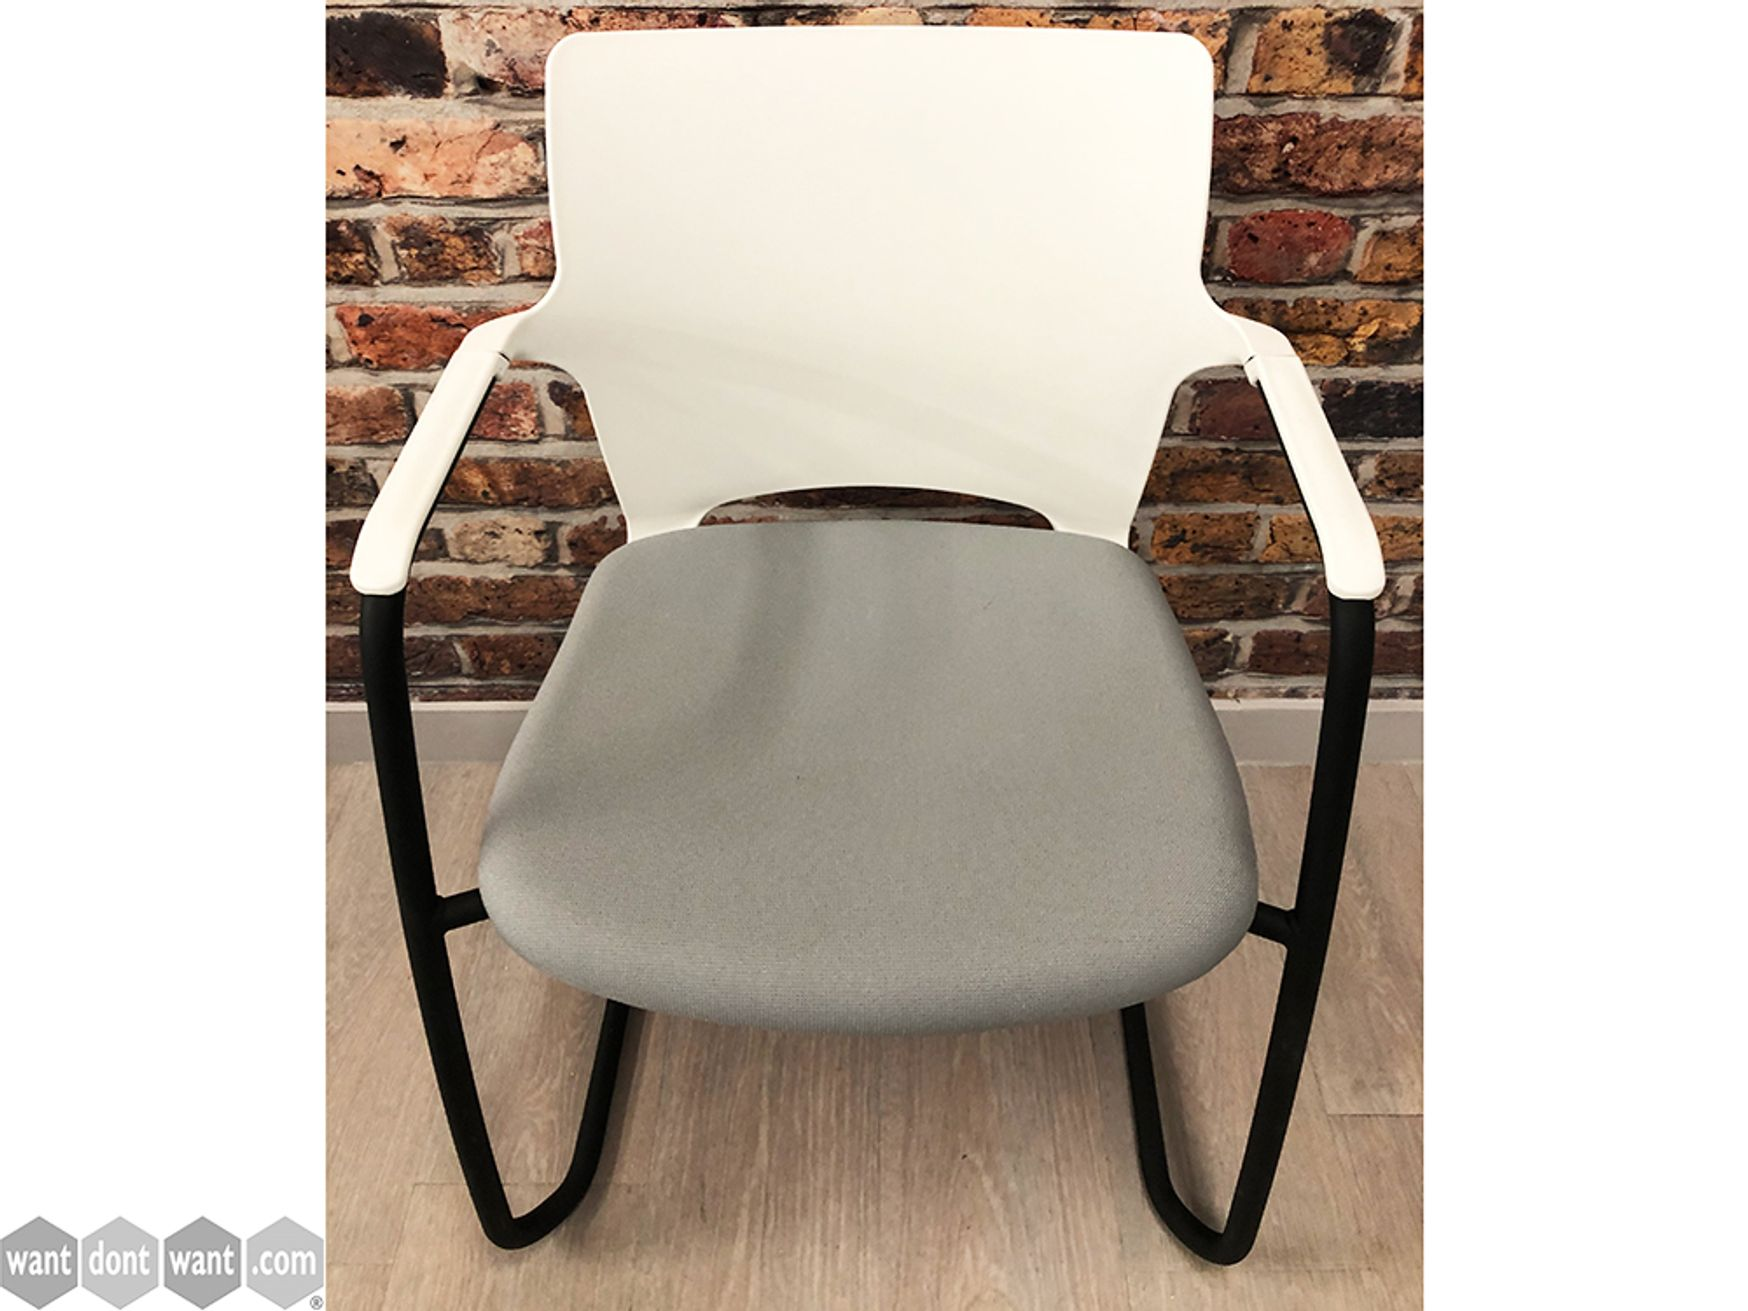 Used Connection Seating Cantilever Meeting Chairs with Fabric Seat and White Back